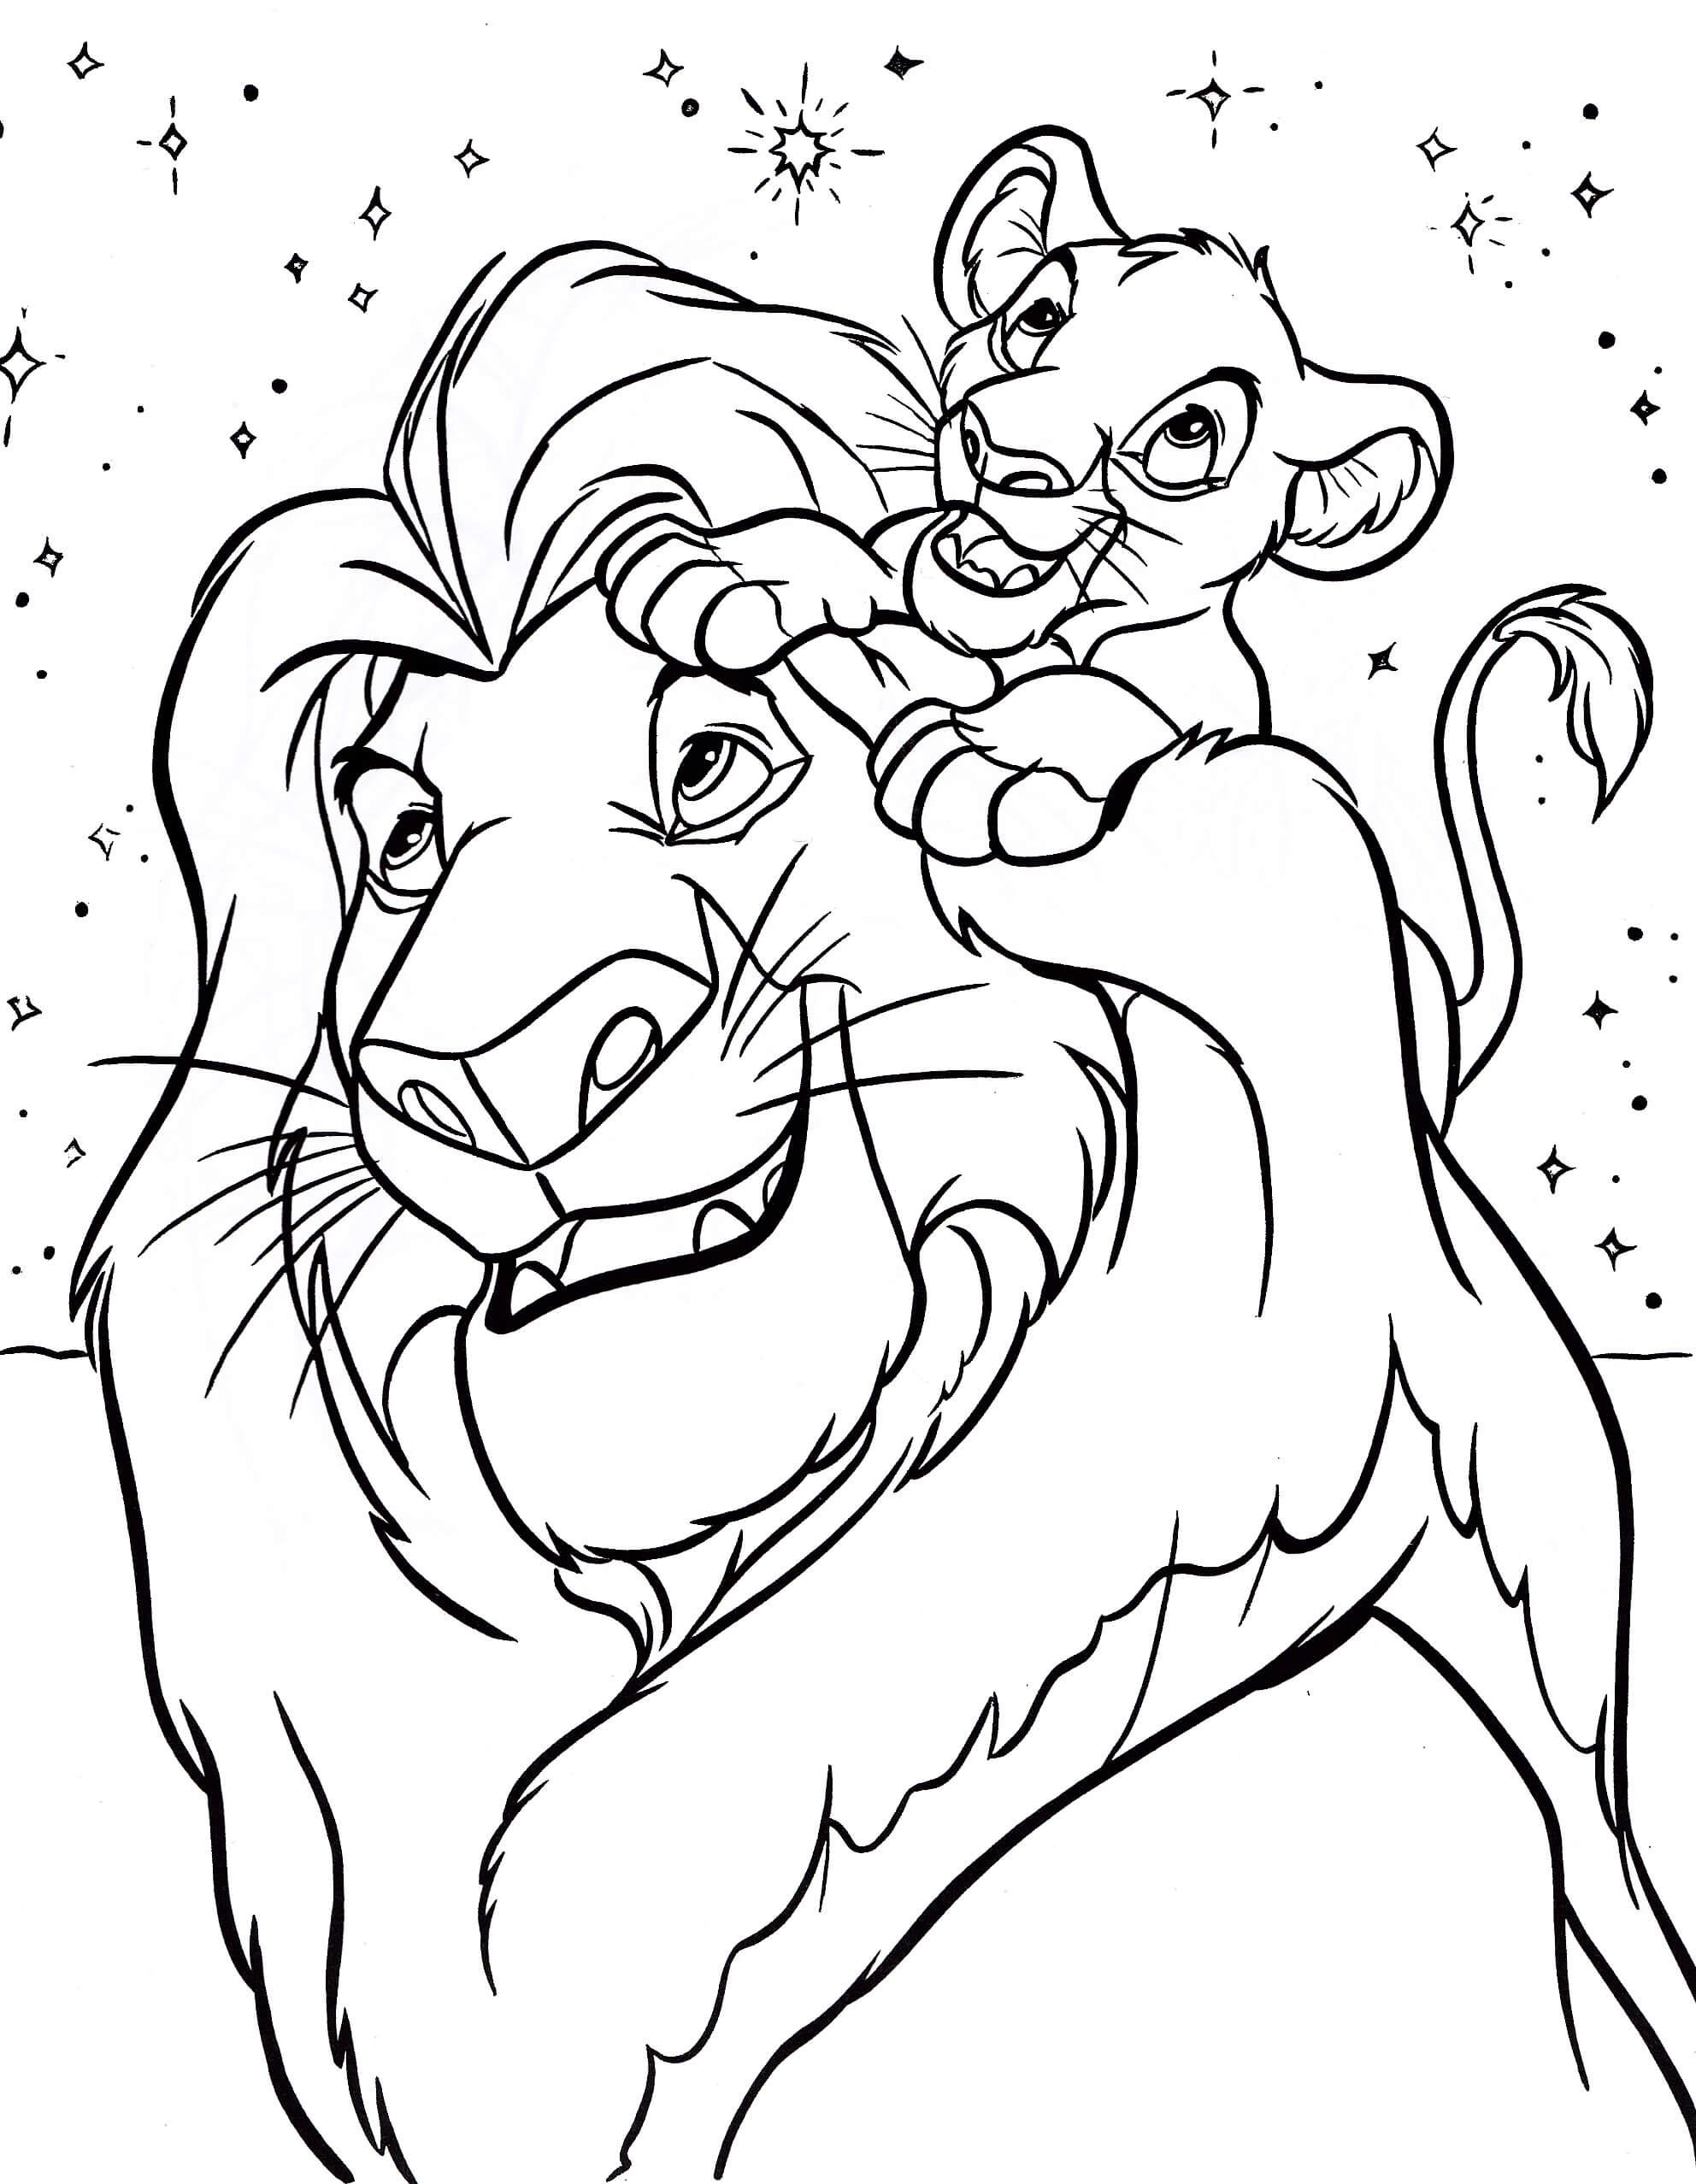 Disney coloring pages for adults - Disney Coloring Pages Disney Coloring Pages Free In Disney 2488